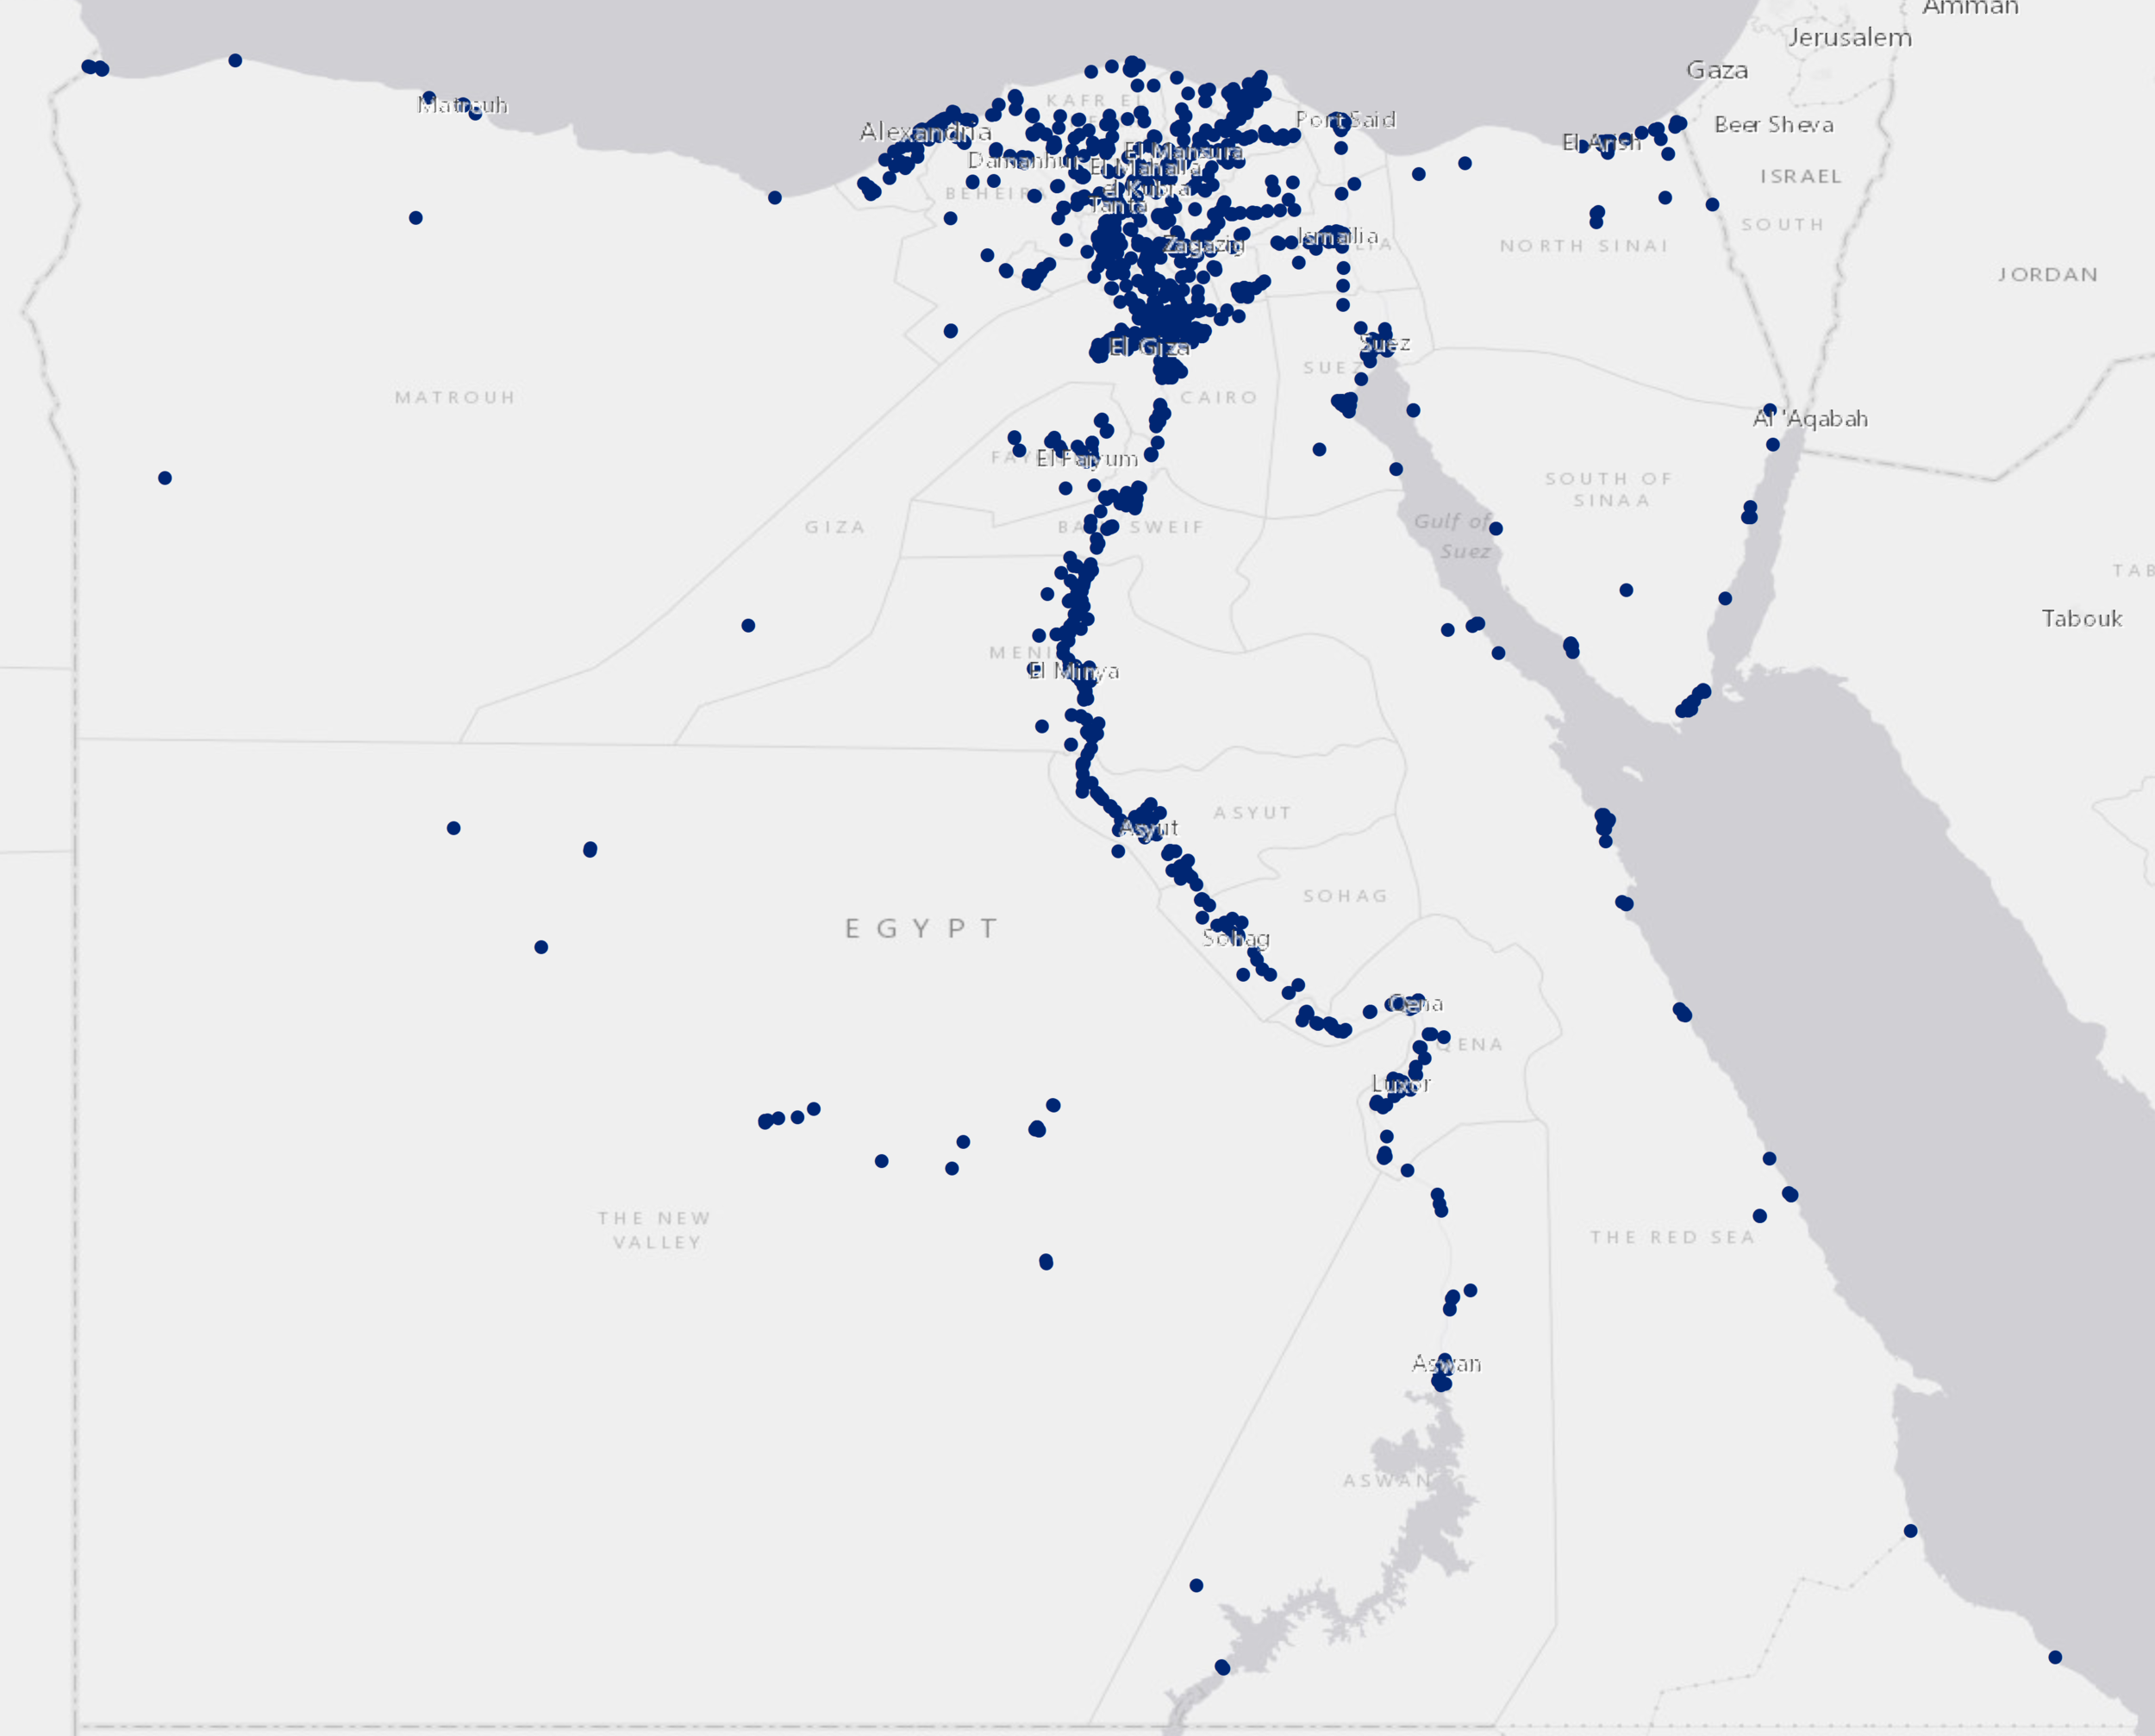 Location of protests in Egypt